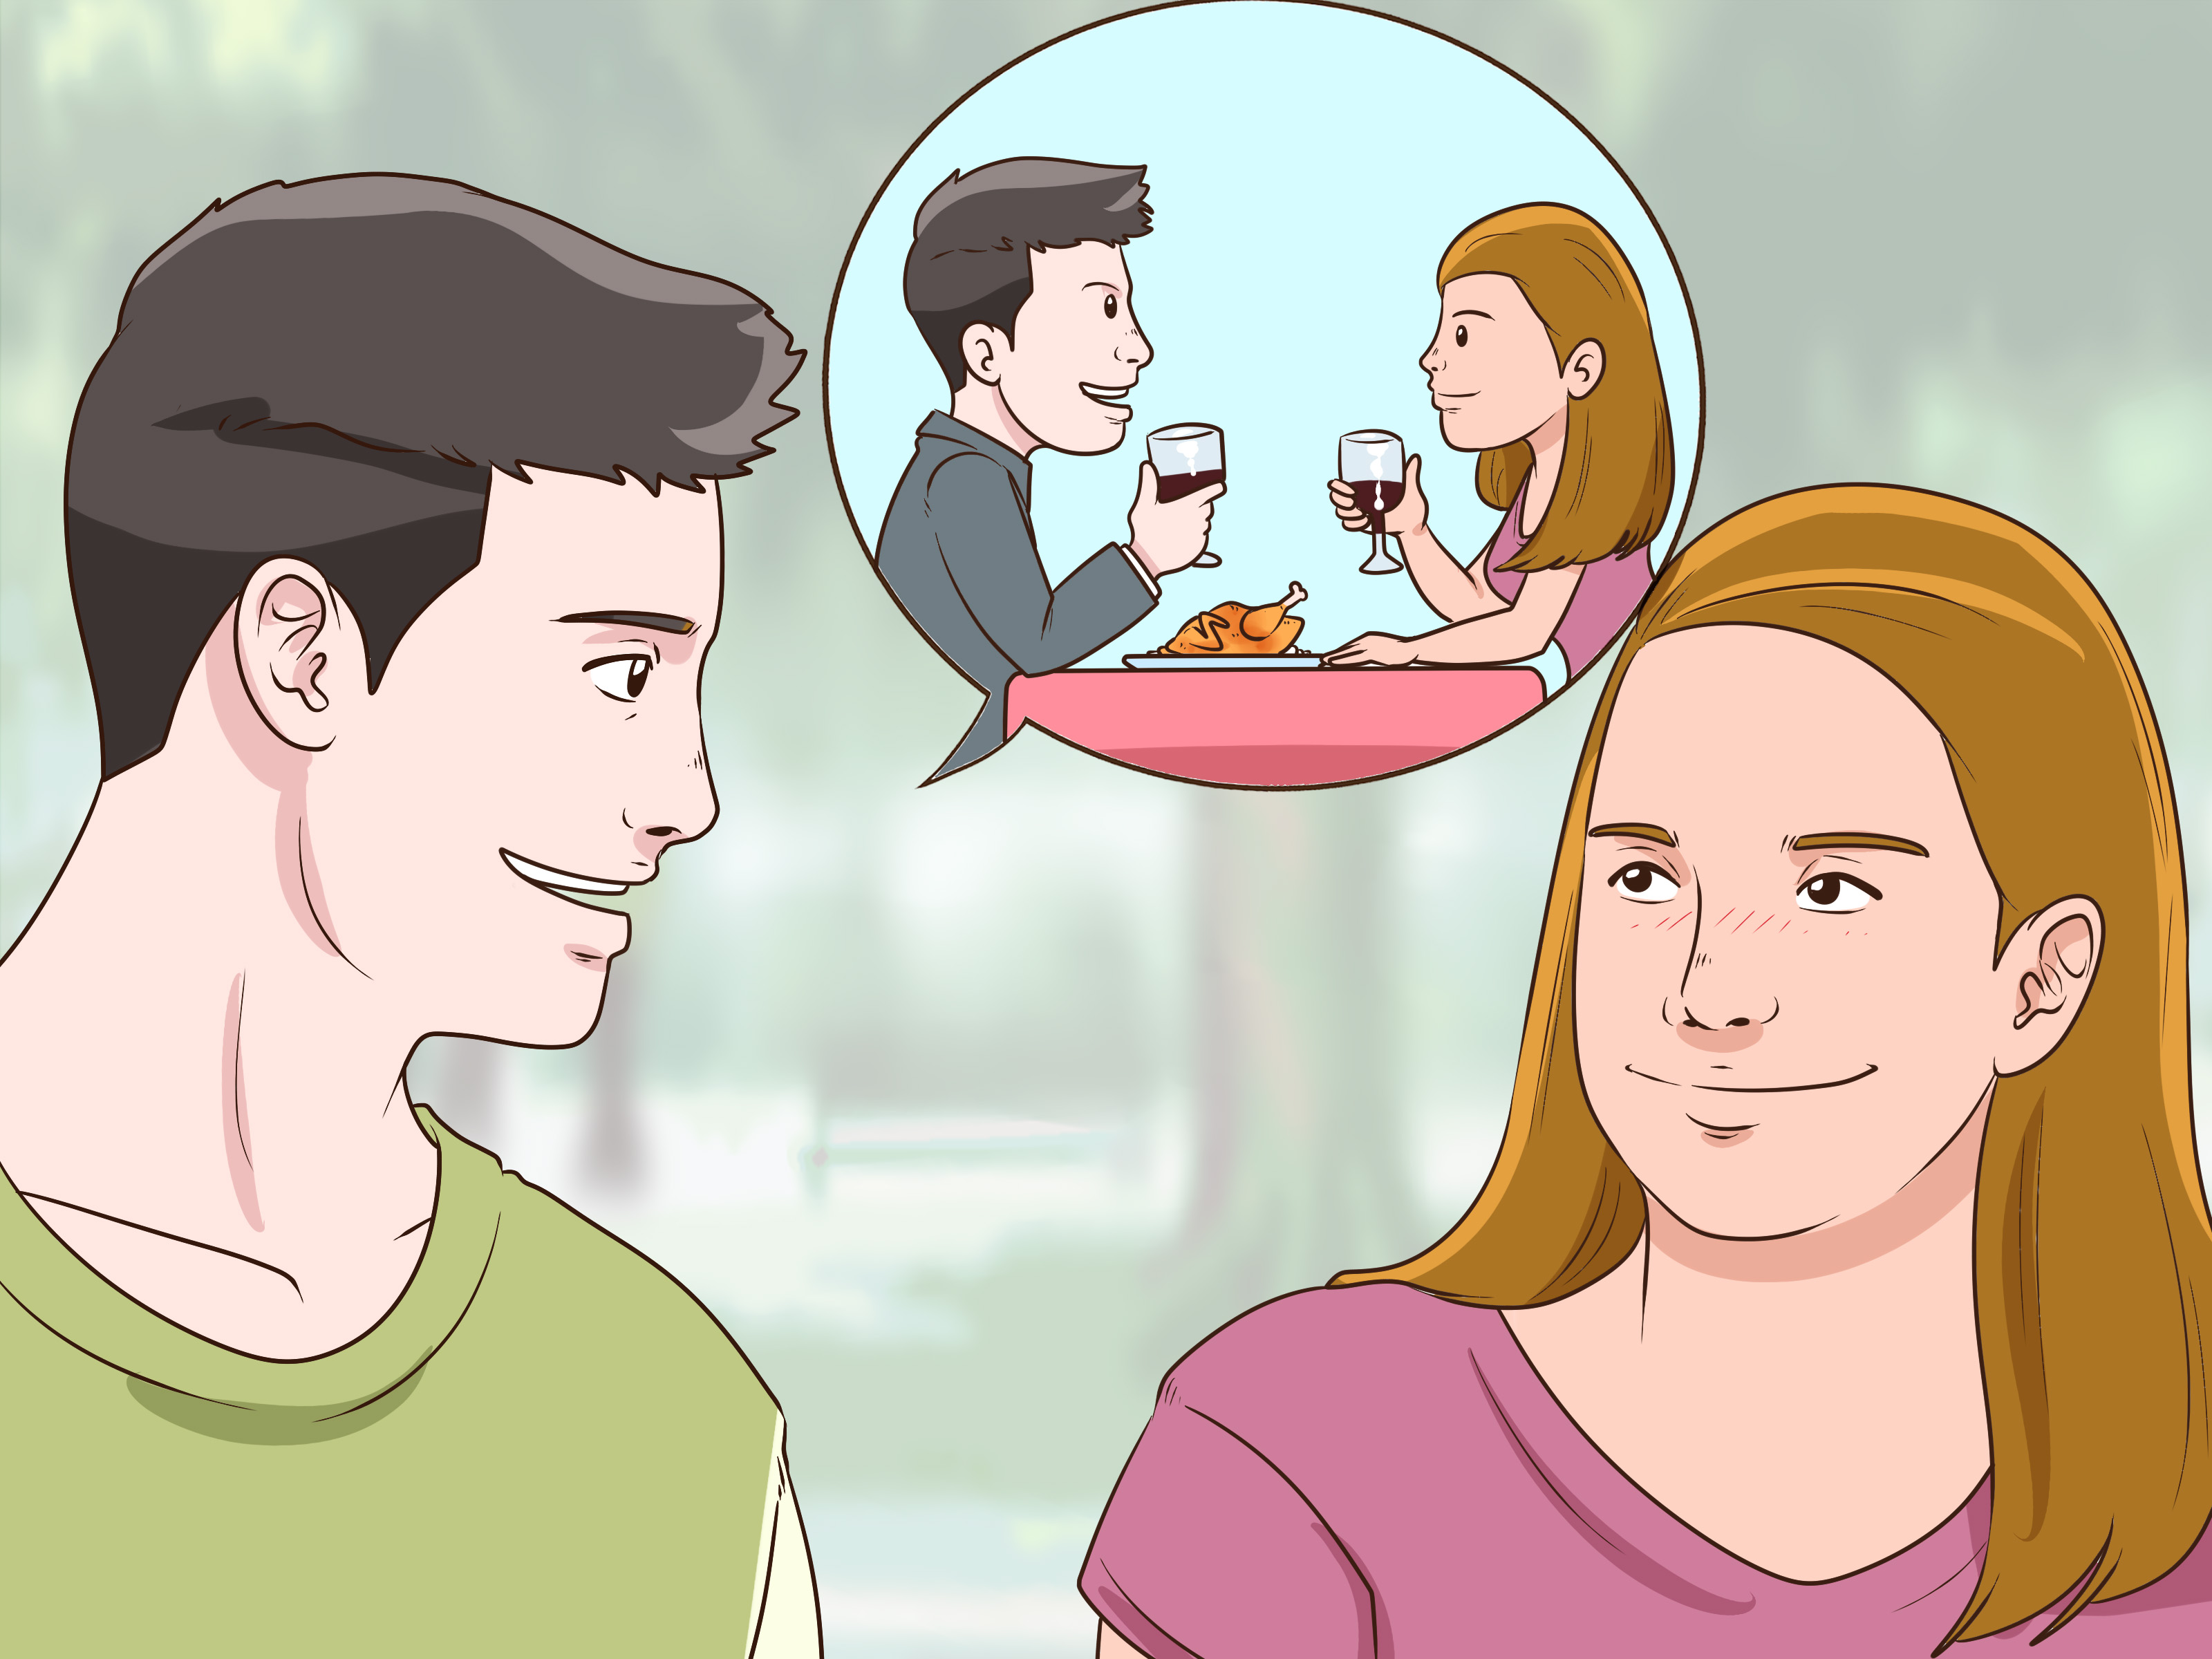 How to tell if girl is interested